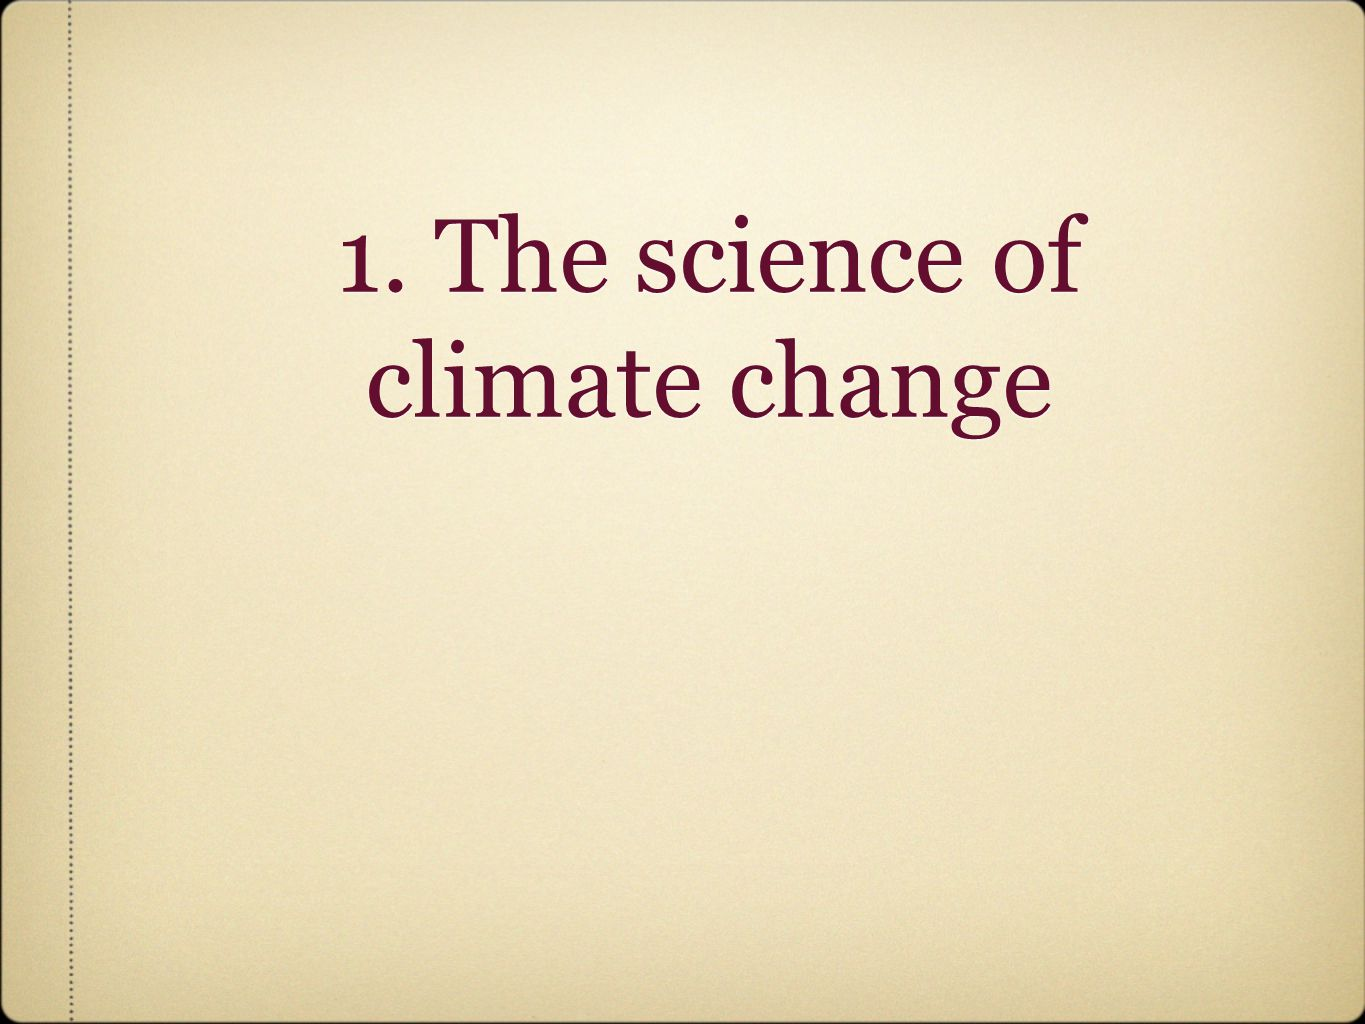 1. The science of climate change